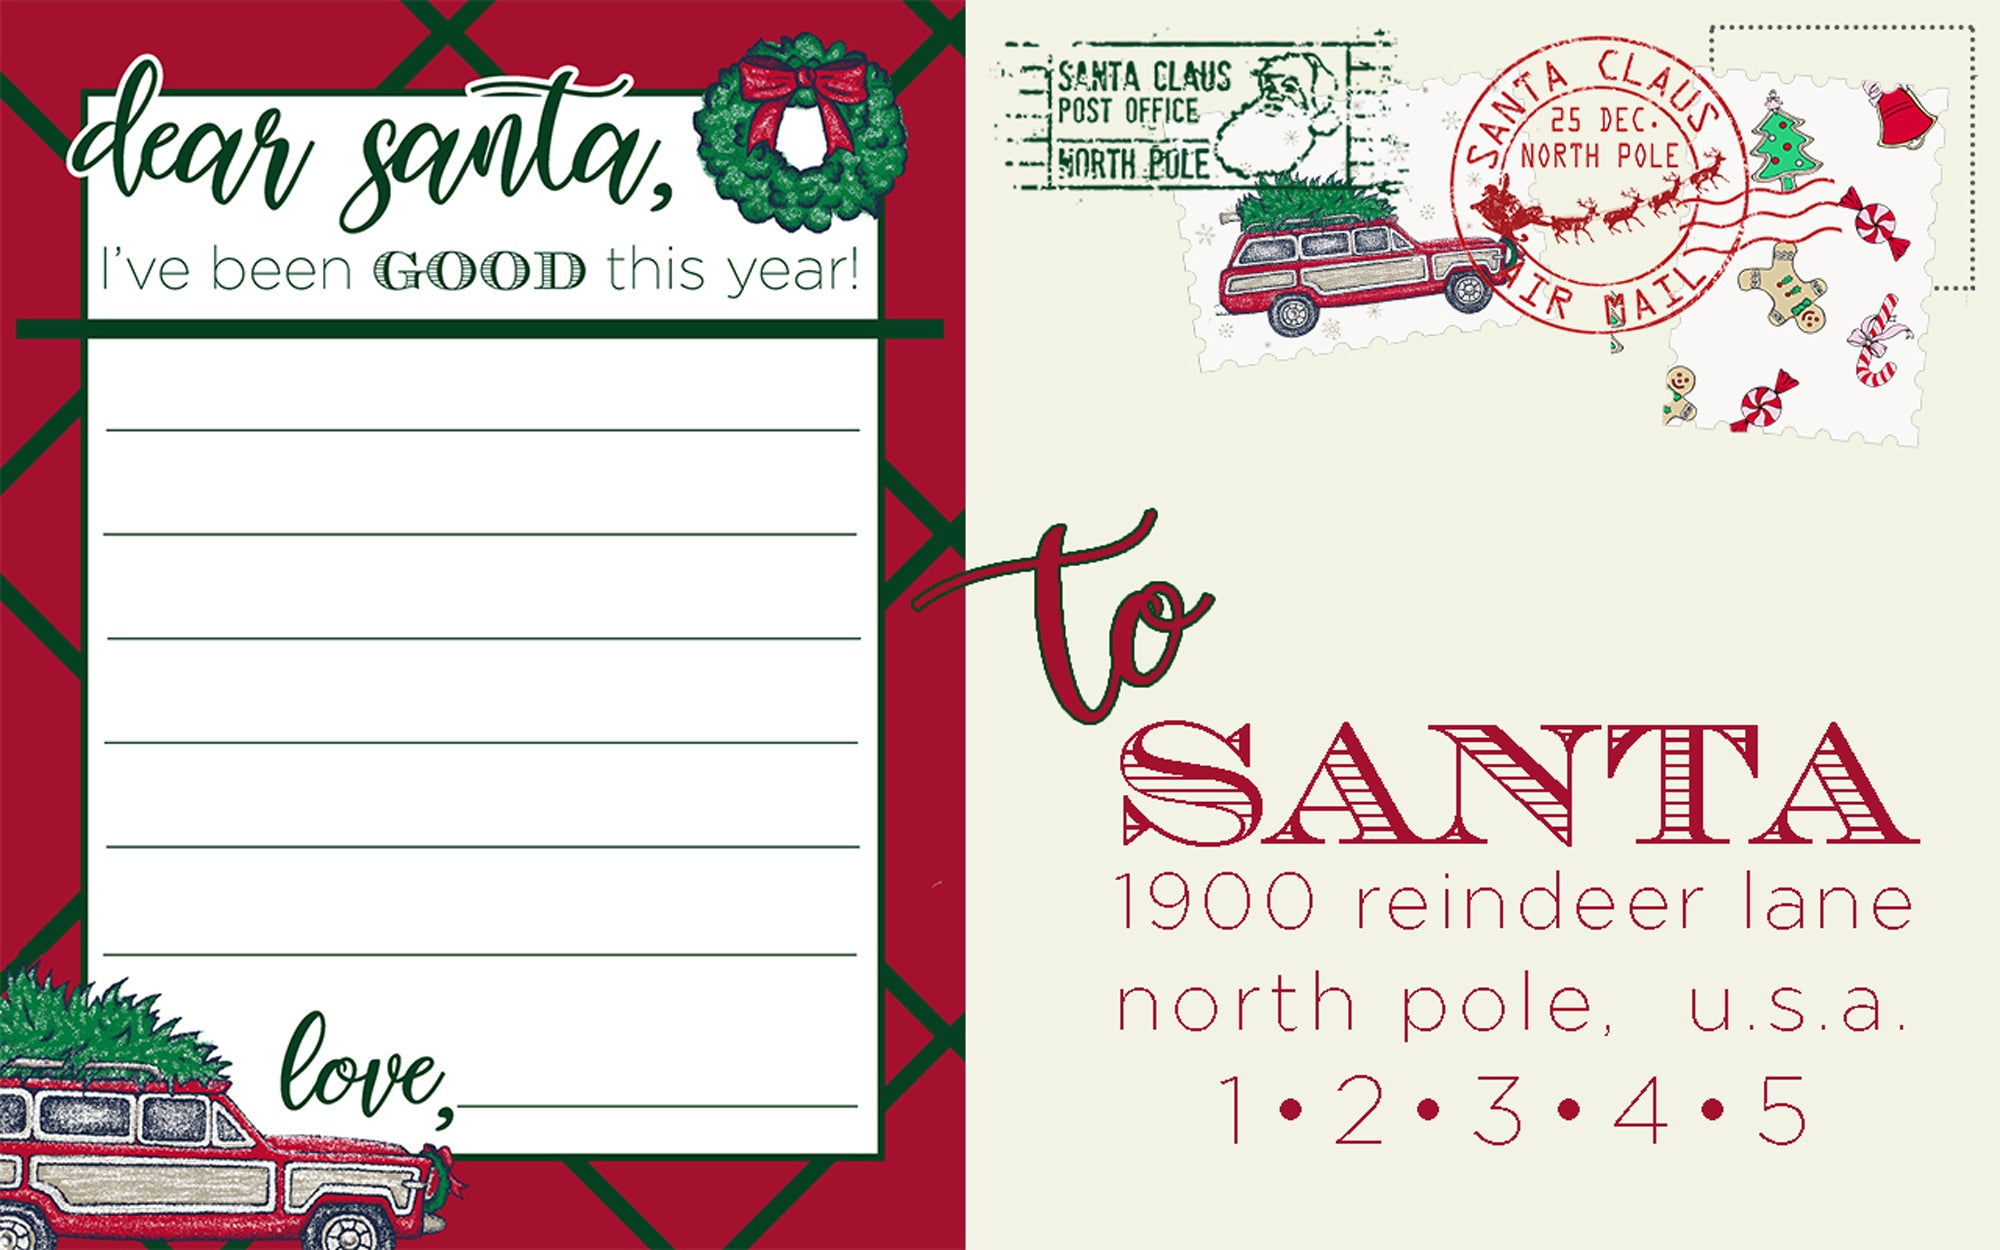 Dear Santa... // The Beaufort Bonnet Company   The Well To Do Review